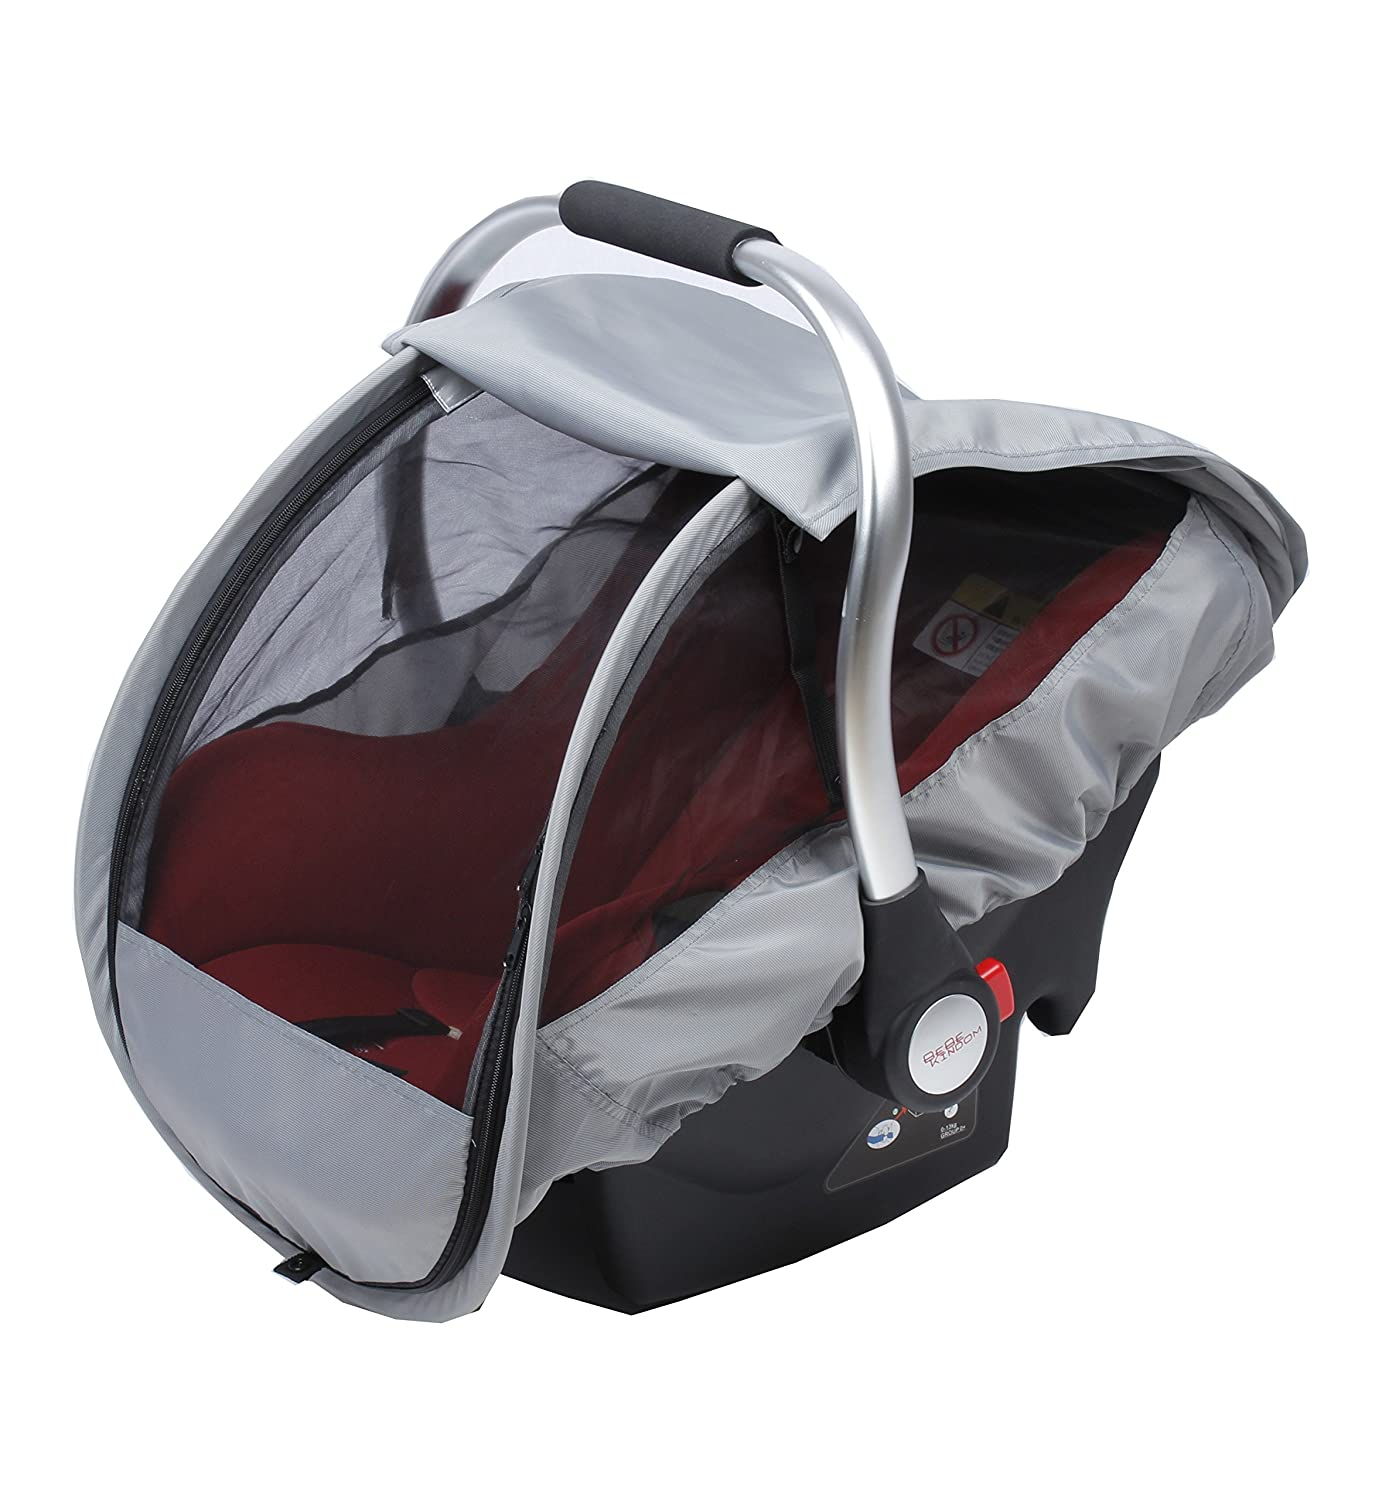 3 in one cover, sun shade, rain cover and insect net, universally fitting rain cover, sun shade for baby carrier 3 in one cover Ockalino